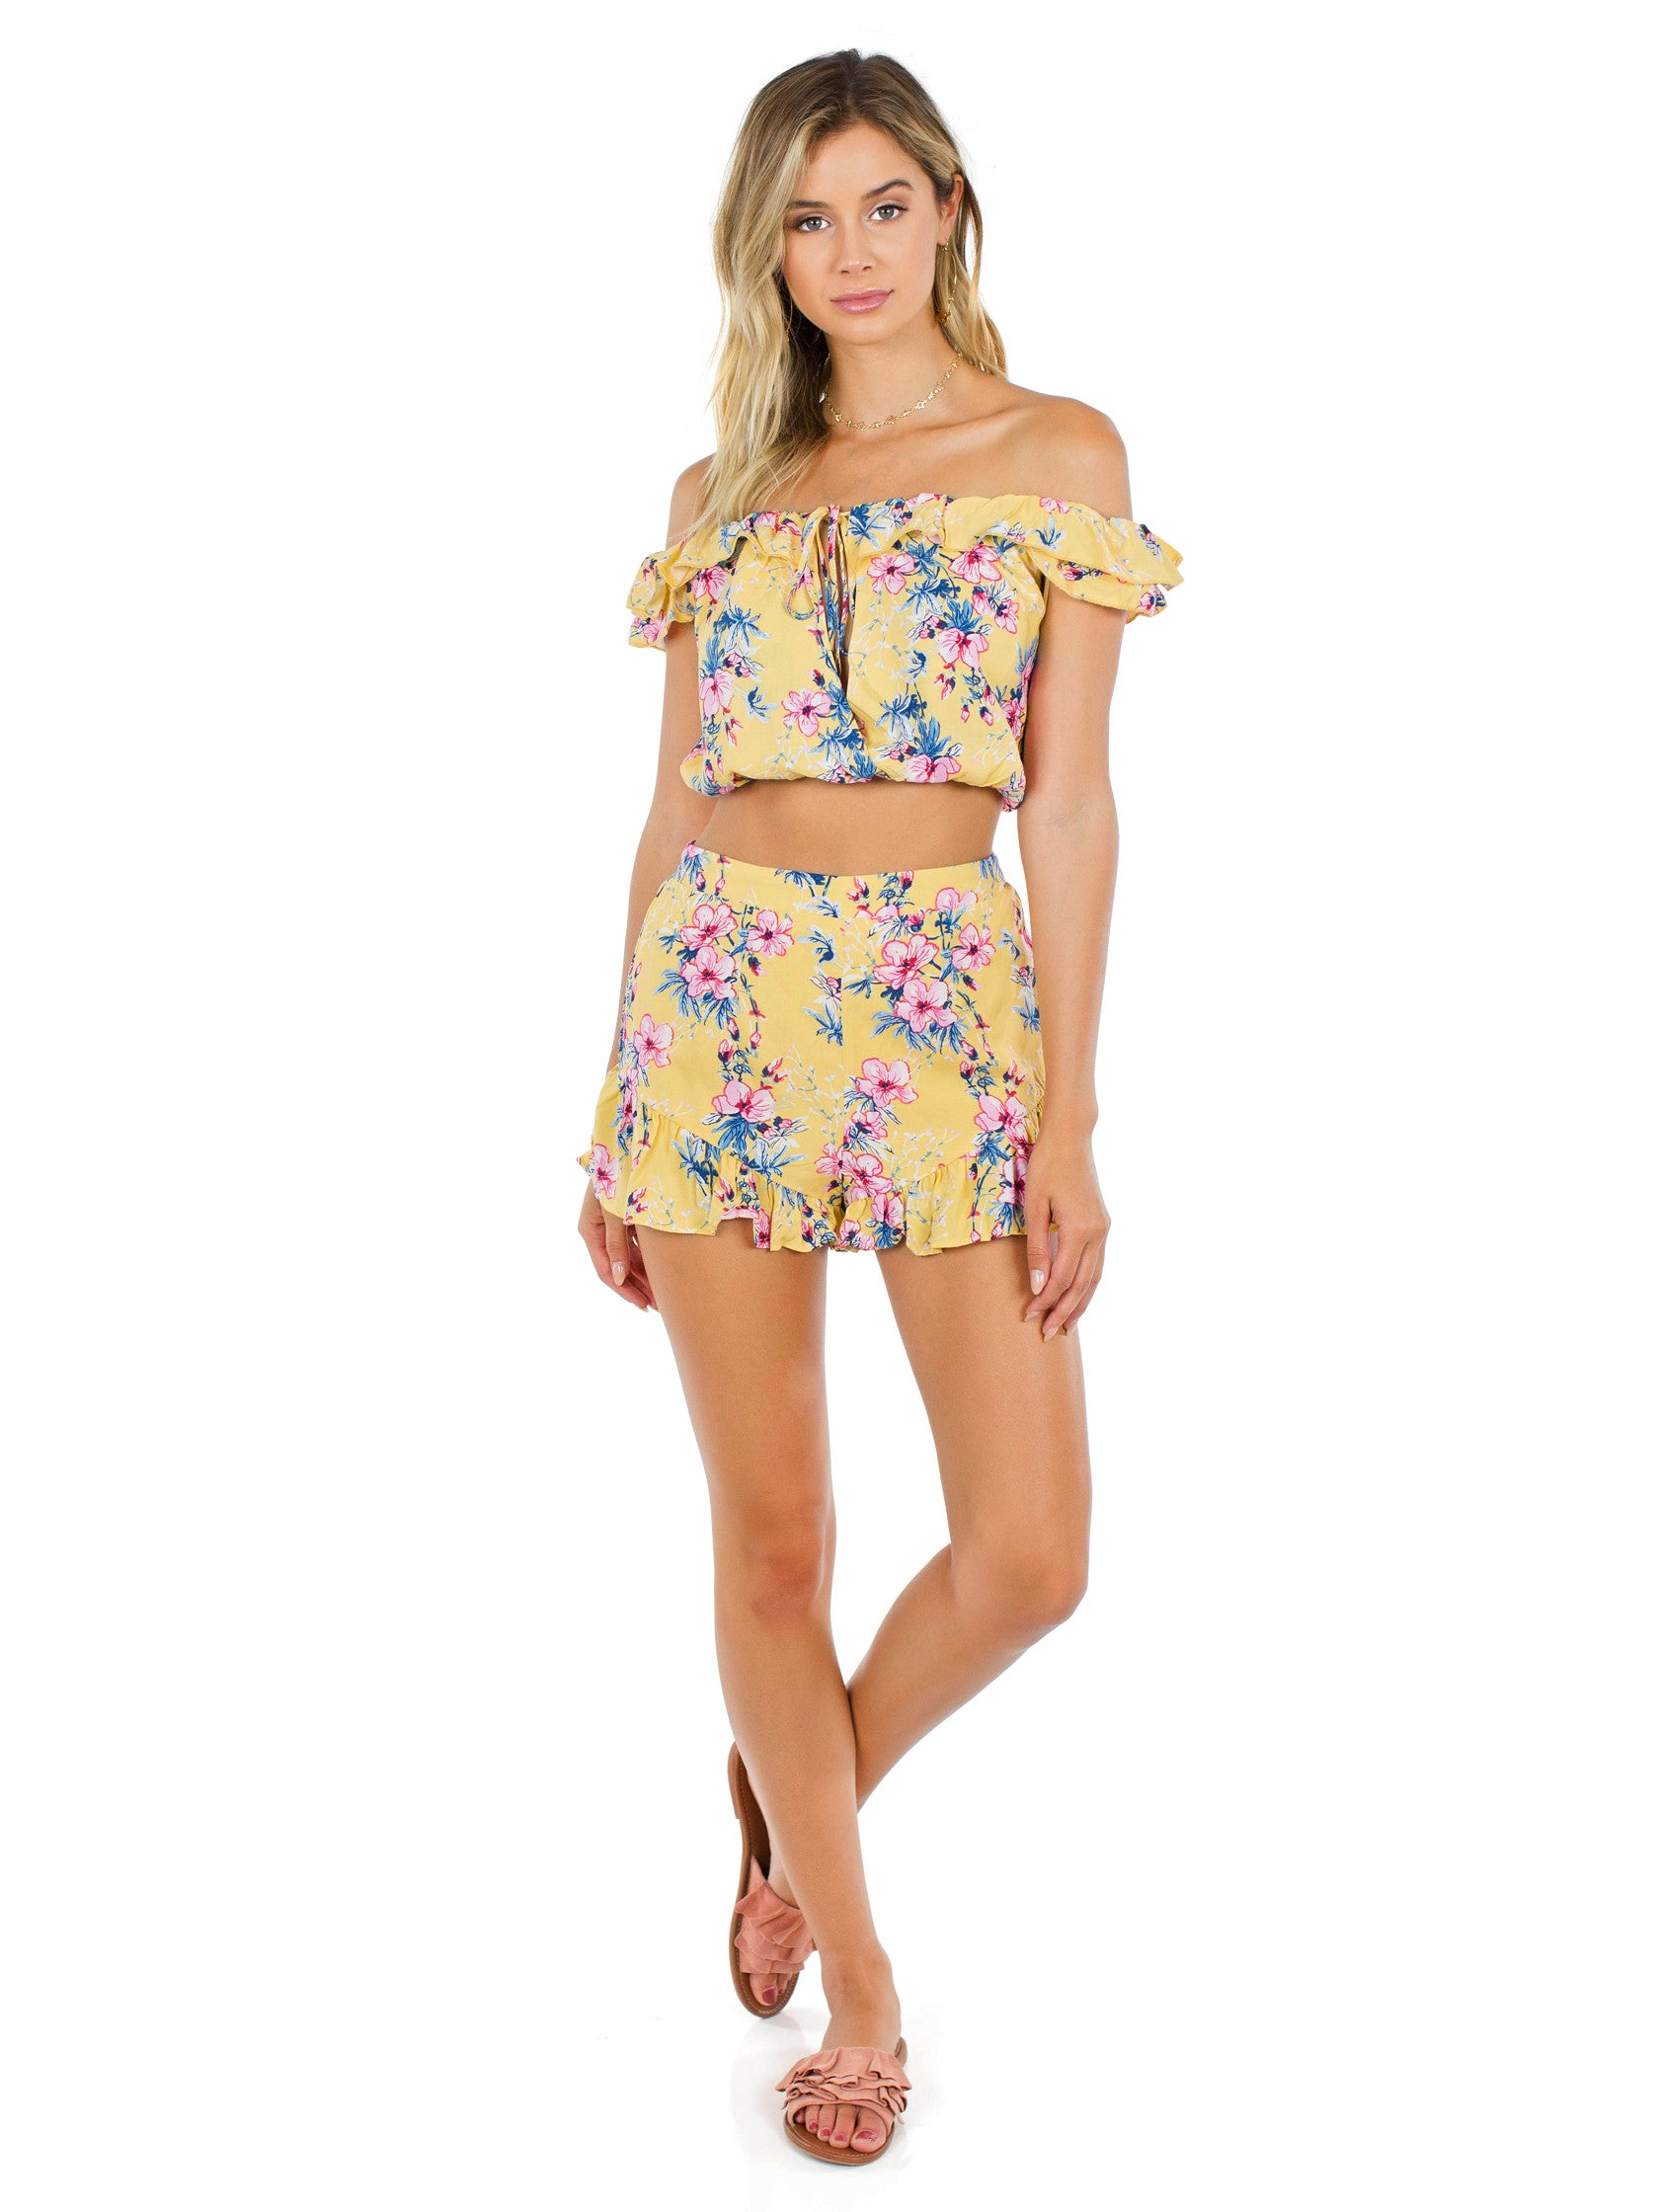 Girl outfit in a two piece rental from FashionPass called Hawaiian Daze Two-piece Set